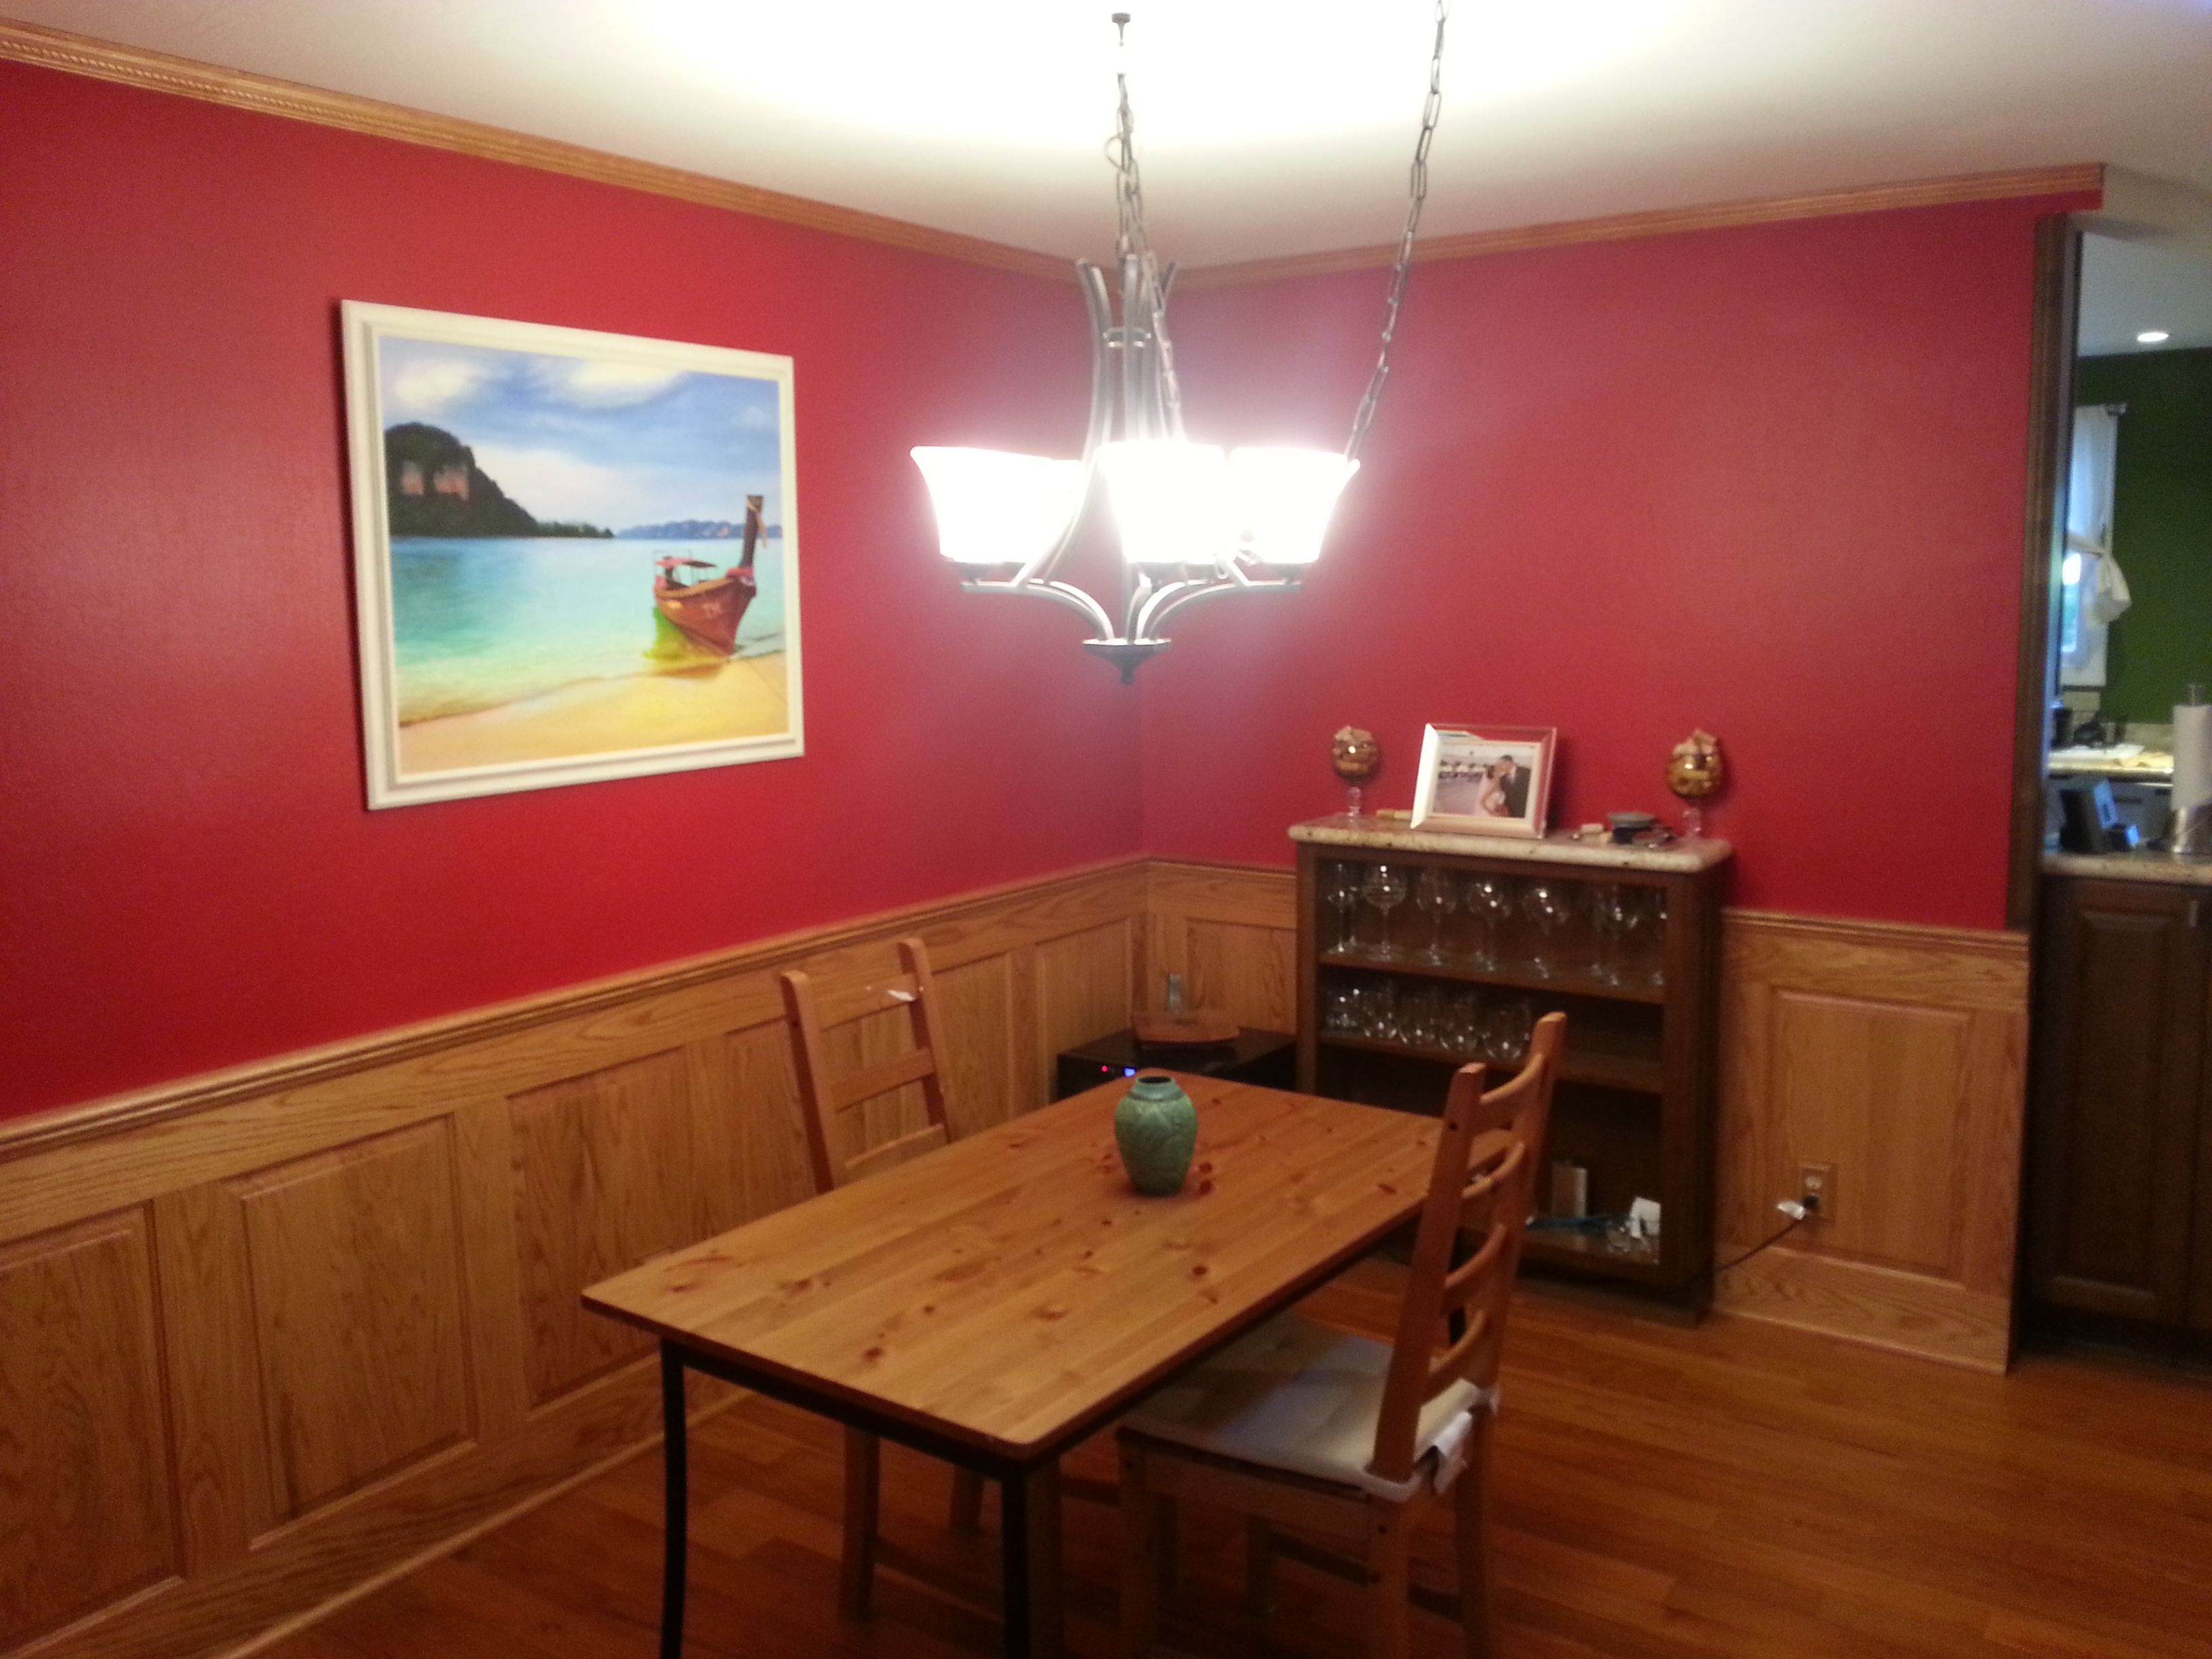 Oak Wainscoting Wood Wainscoting Stained Wainscoting Hallway Wainscoting Kitchen